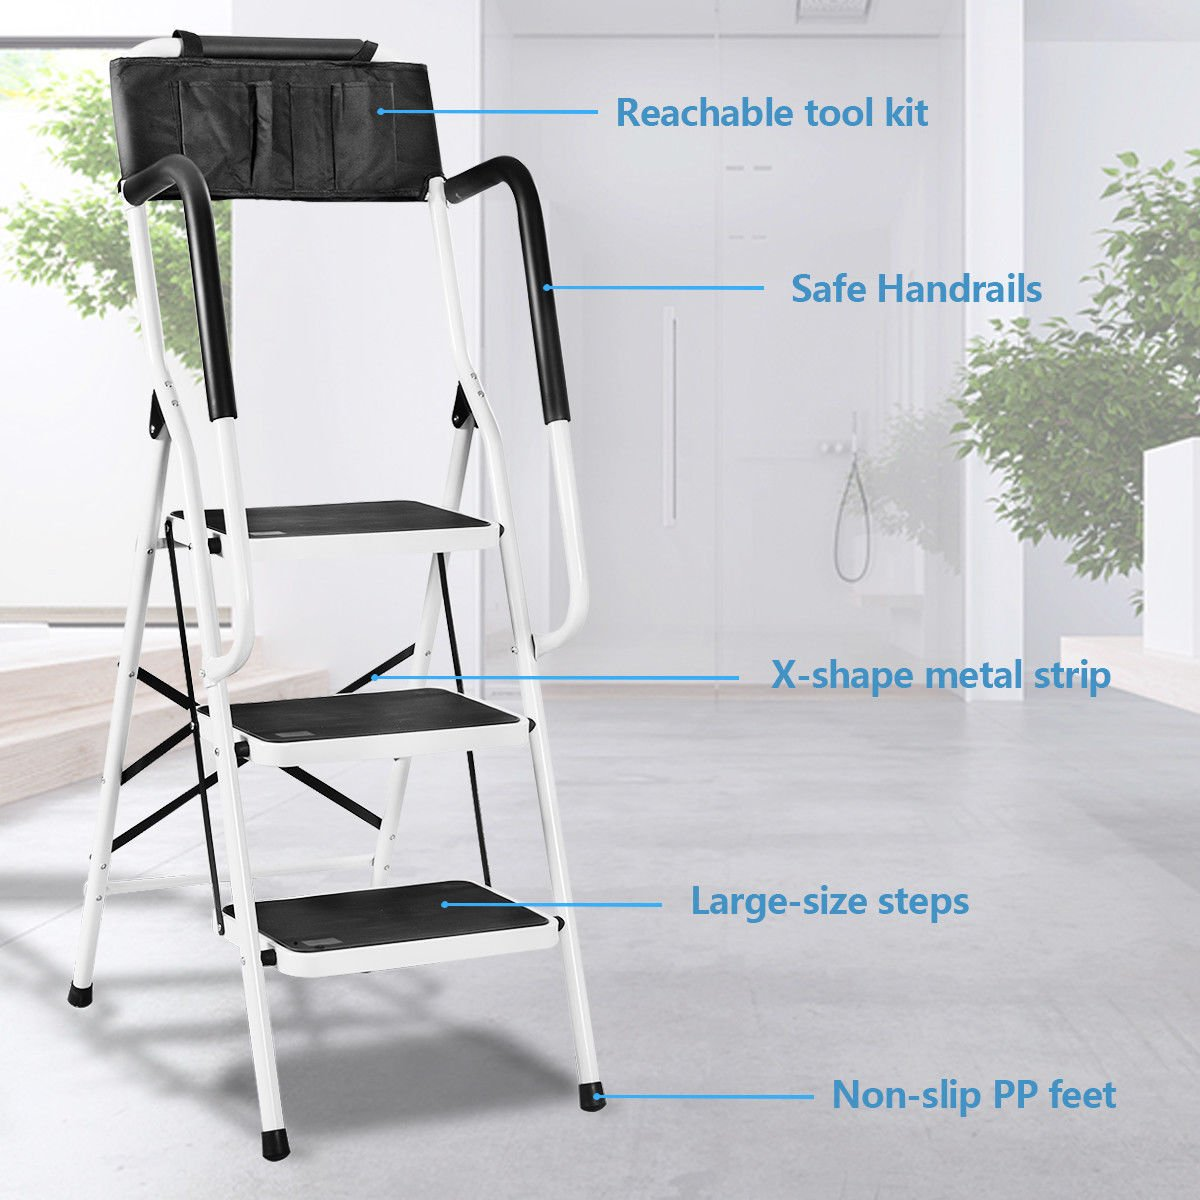 Giantex Folding 3 Step Ladder W/Padded Side Handrails Non-Slip Steps Tool Pouch Caddy Lightweight Powerful Capacity by Giantex (Image #4)